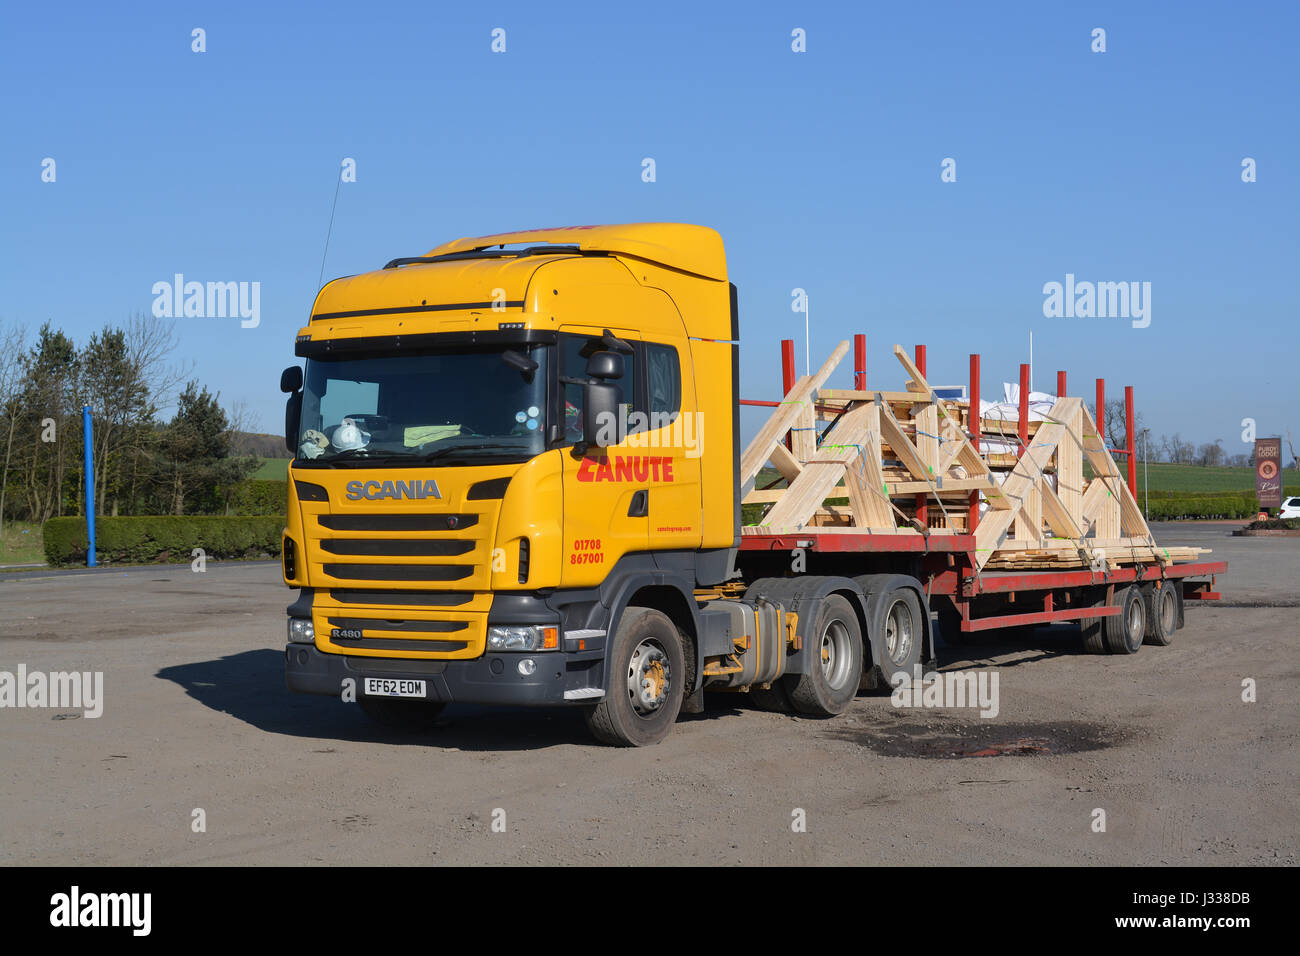 scania lorry stockfotos scania lorry bilder alamy. Black Bedroom Furniture Sets. Home Design Ideas